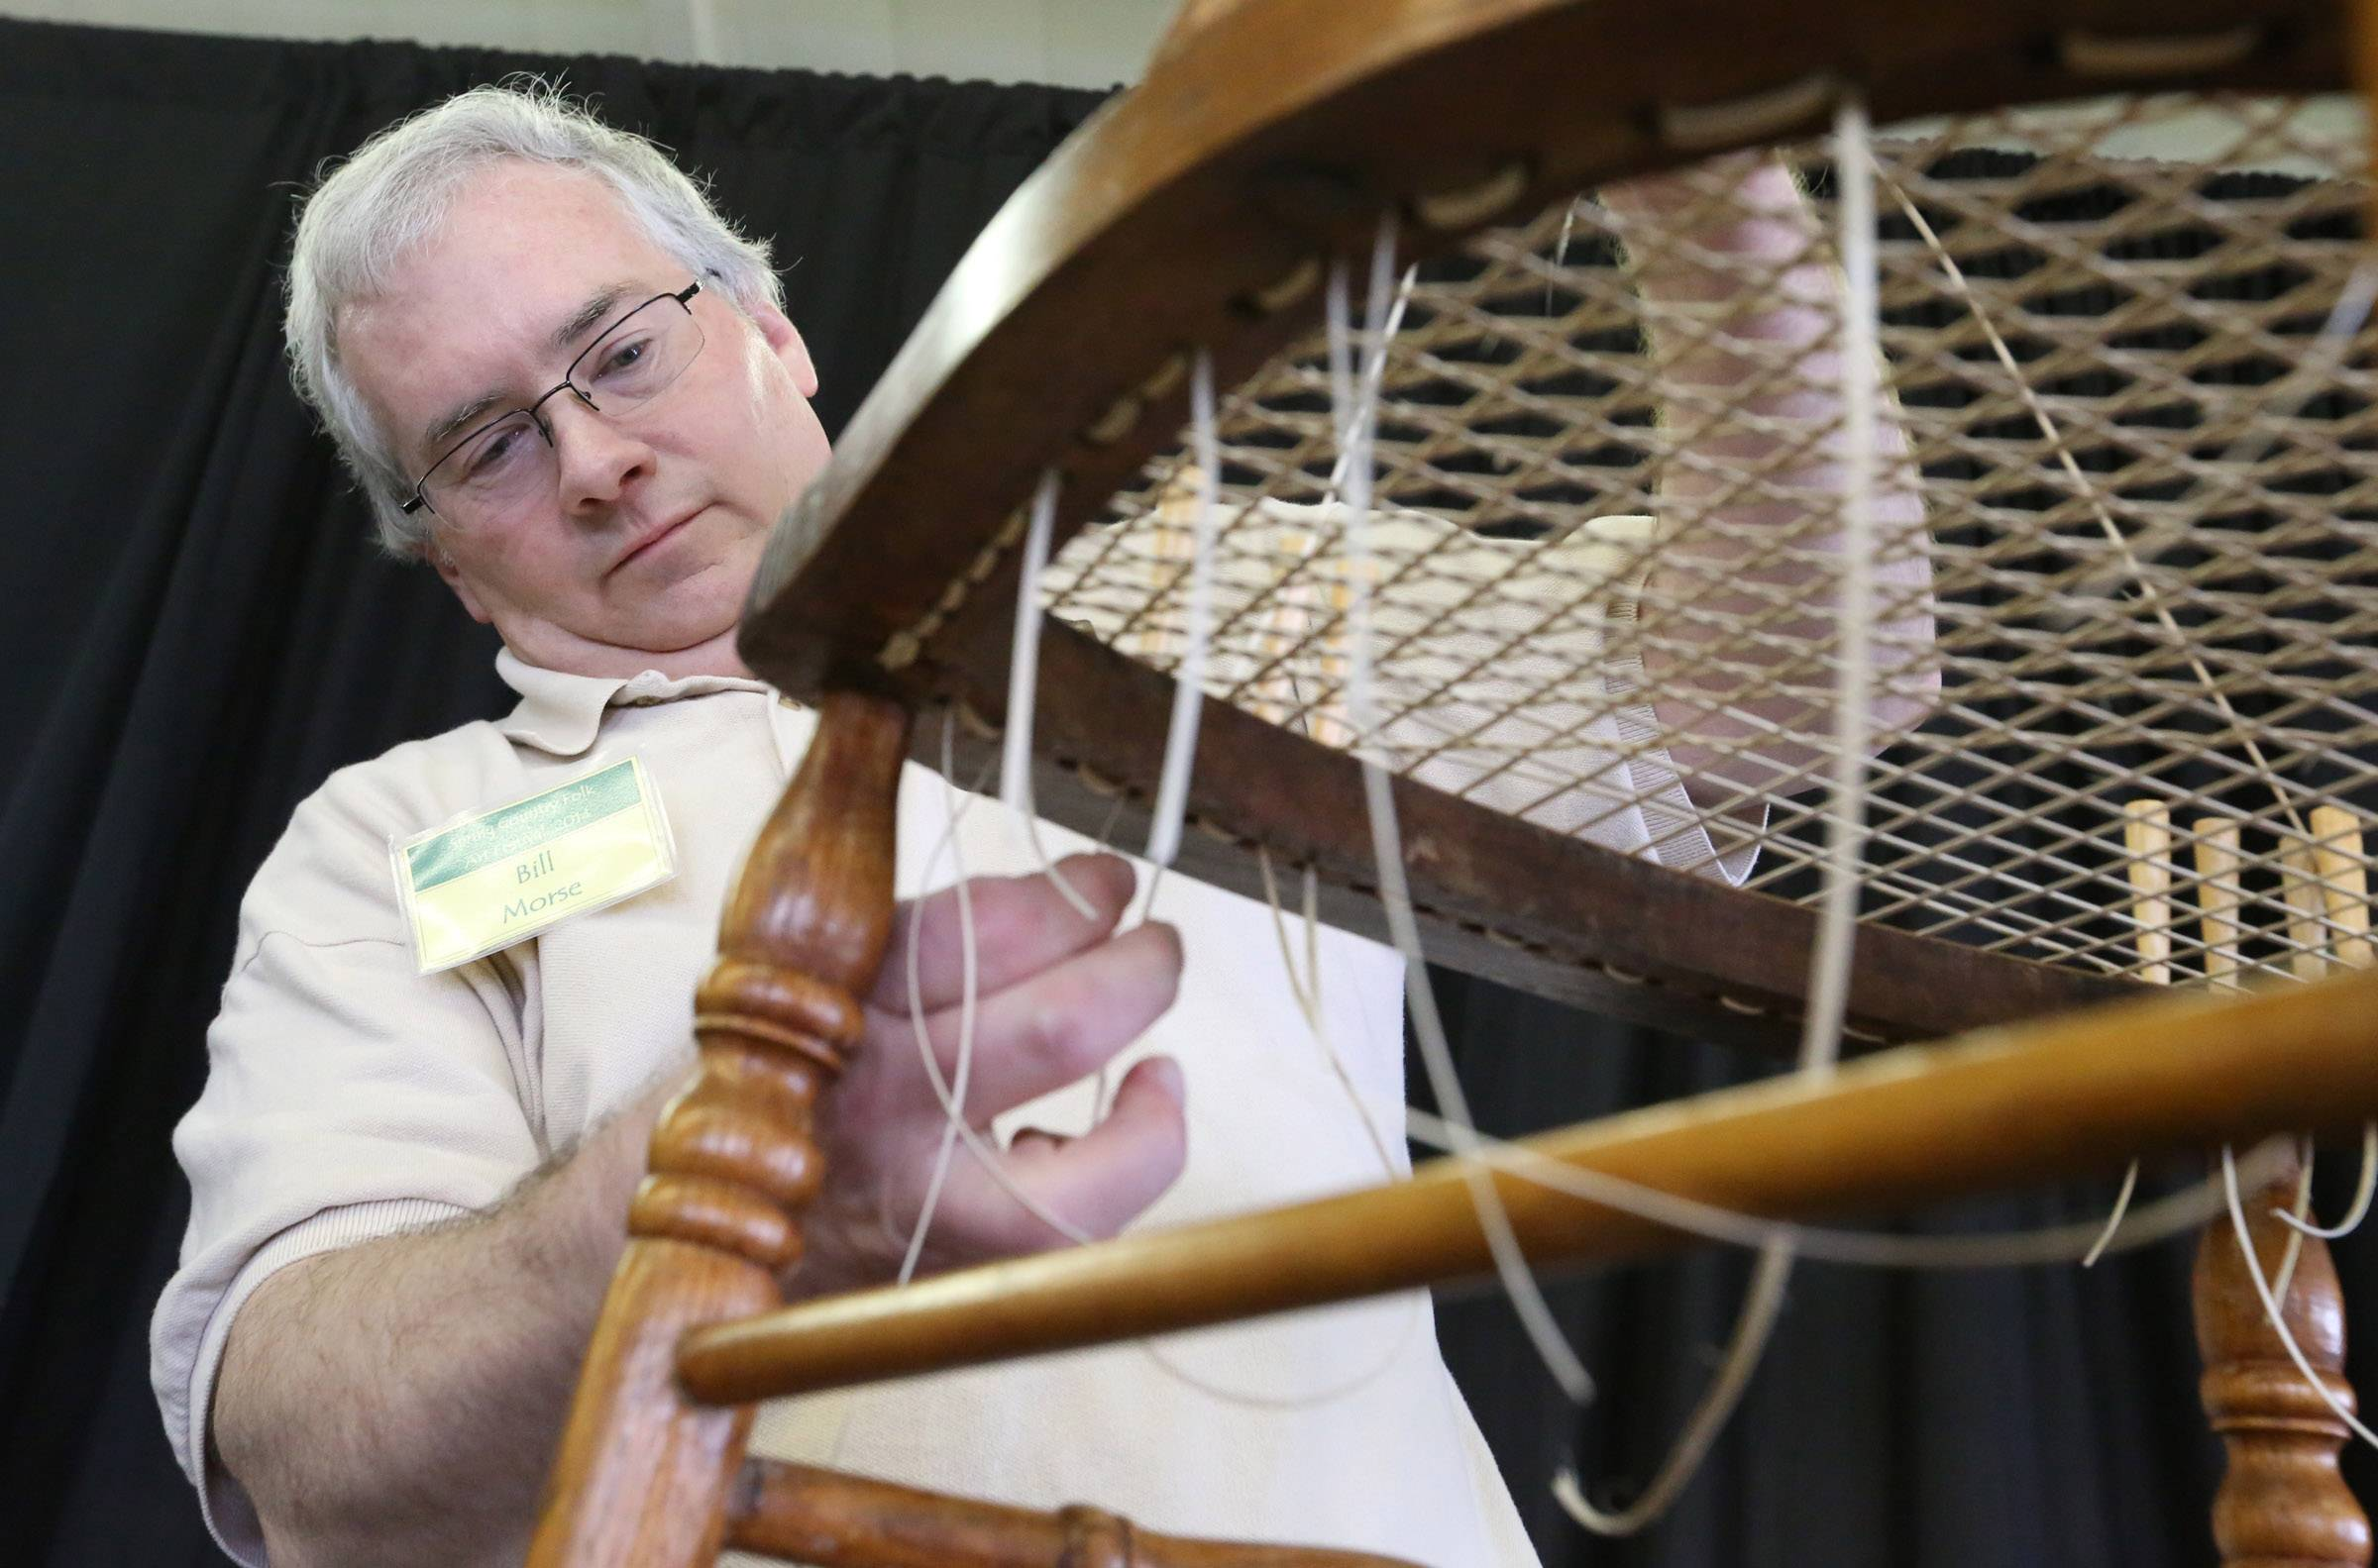 Bill Morse of Elgin weaves a seat for a wooden chair during a Spring Country Folk Art Festival at Kane County Fairgrounds on Saturday in St. Charles.